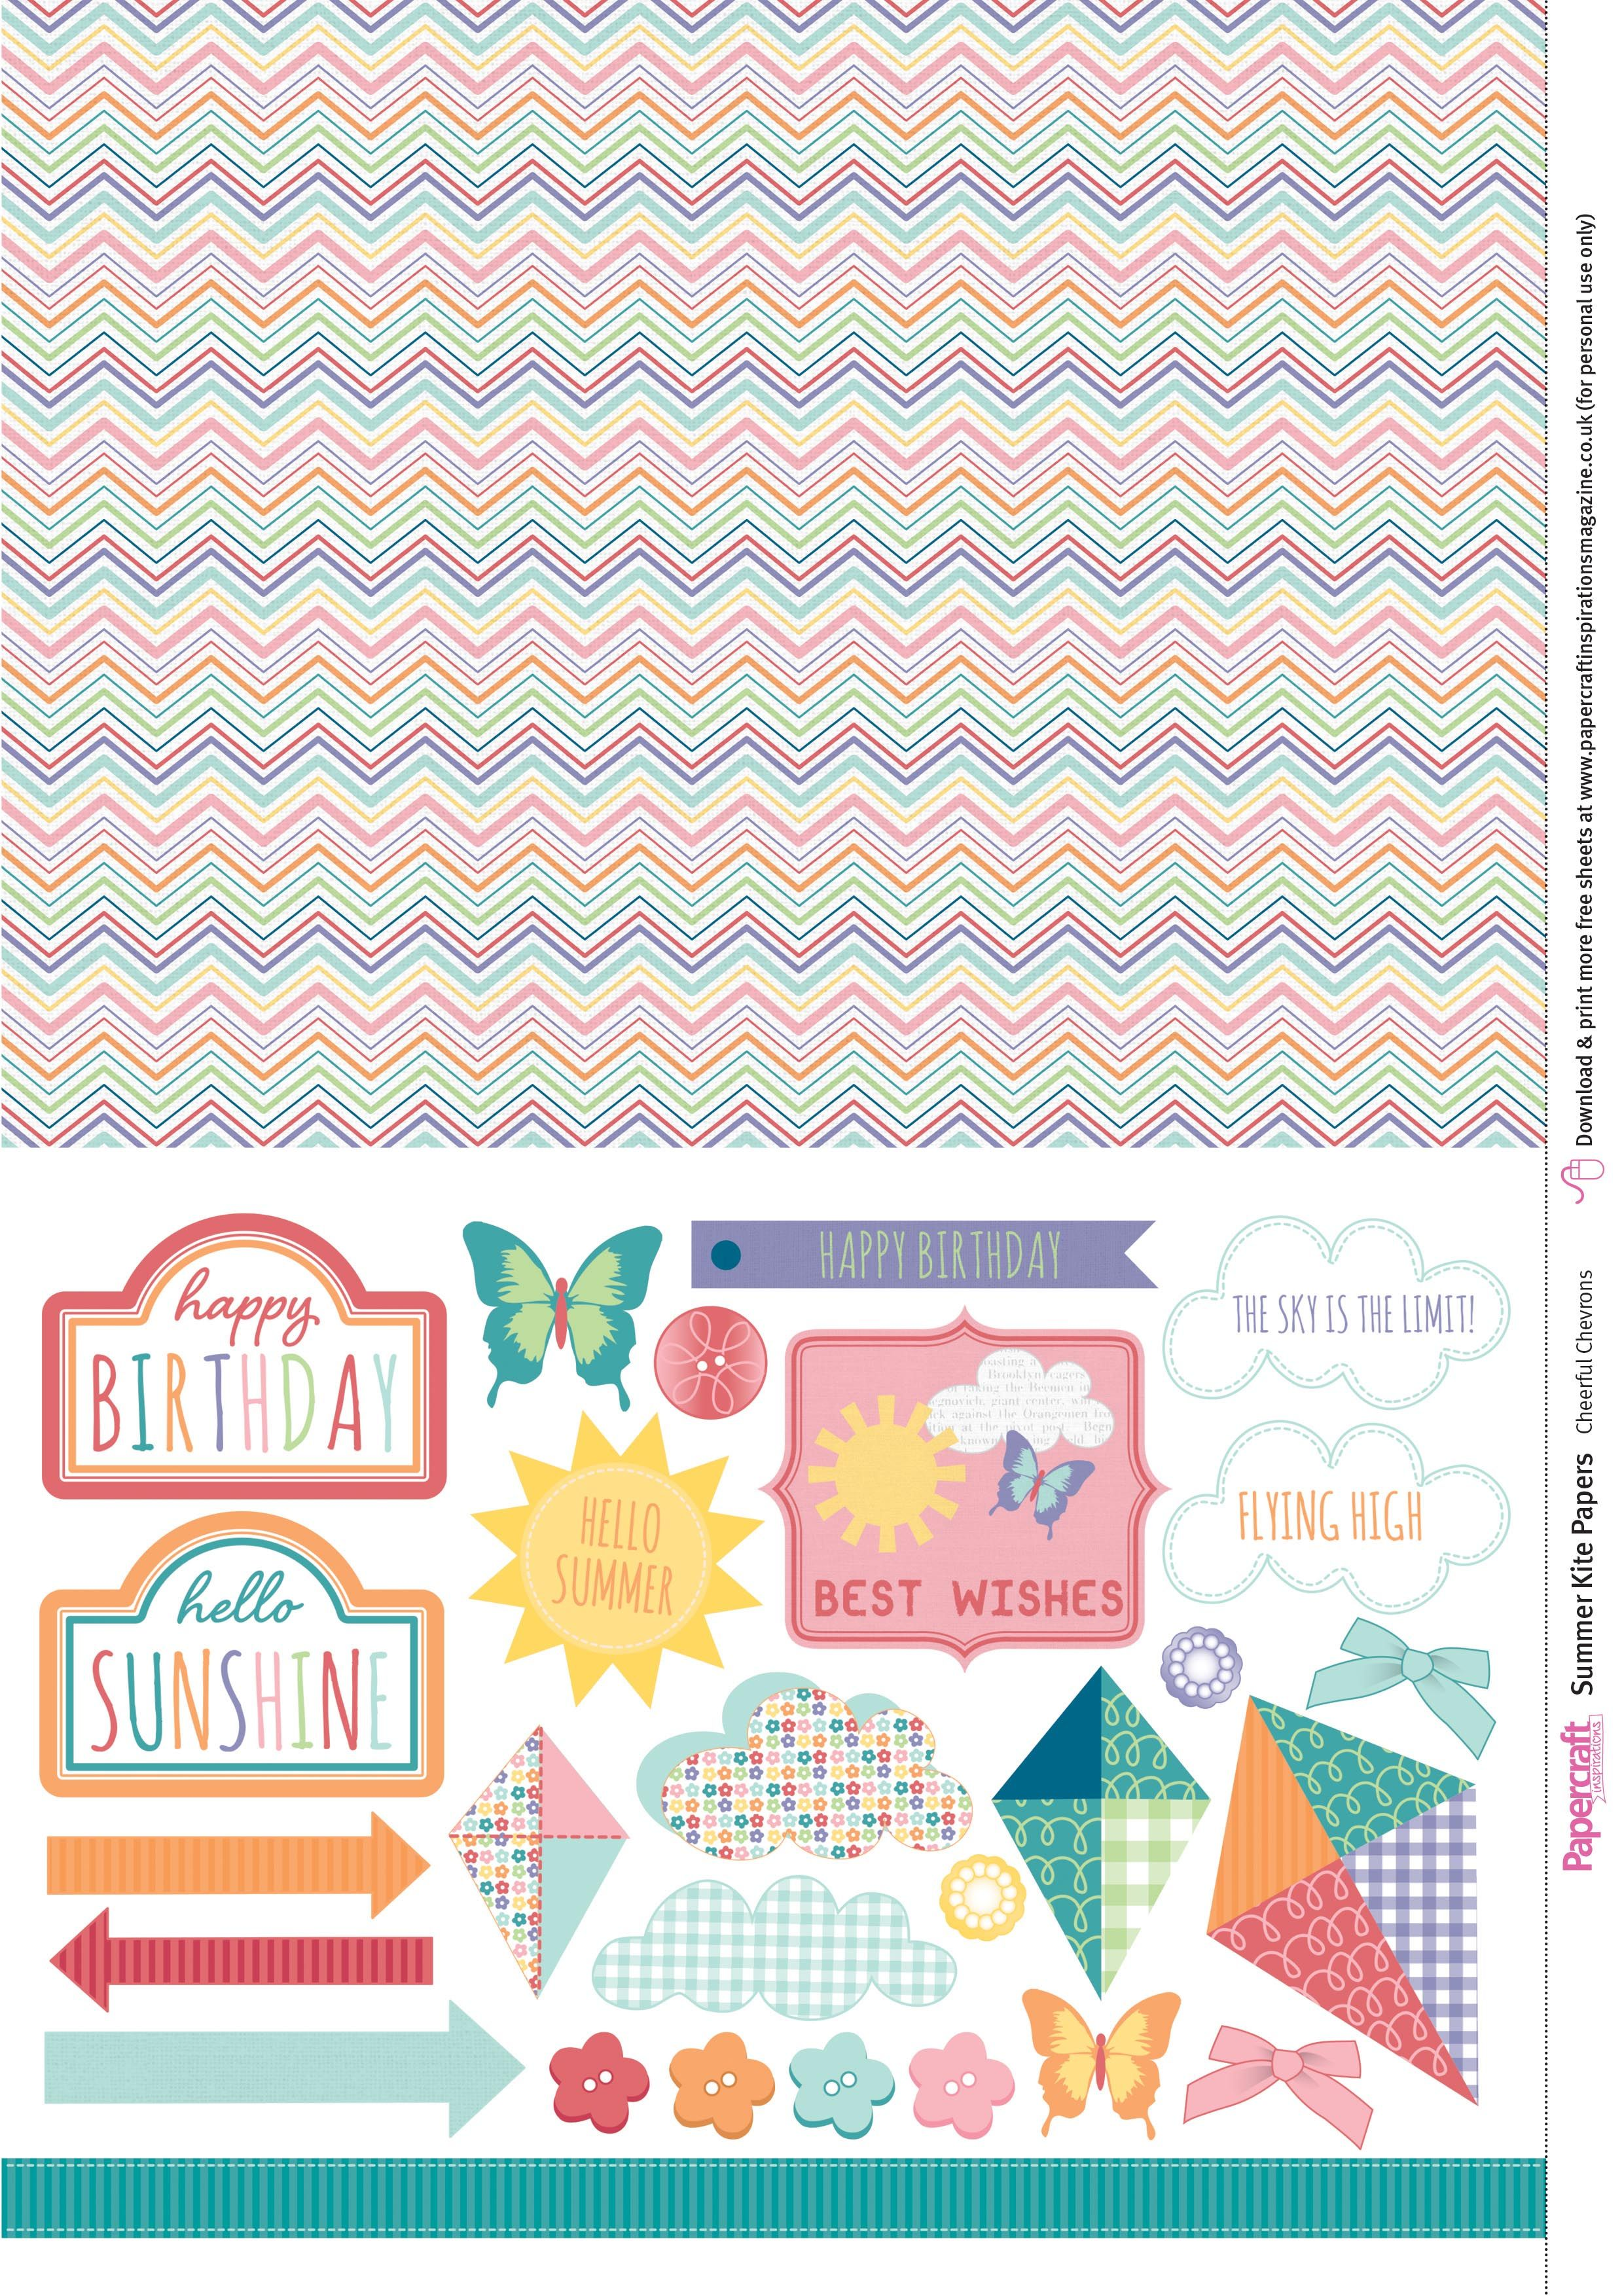 Saturday s Guest Freebies Papercraft Inspirations ✿ Follow the